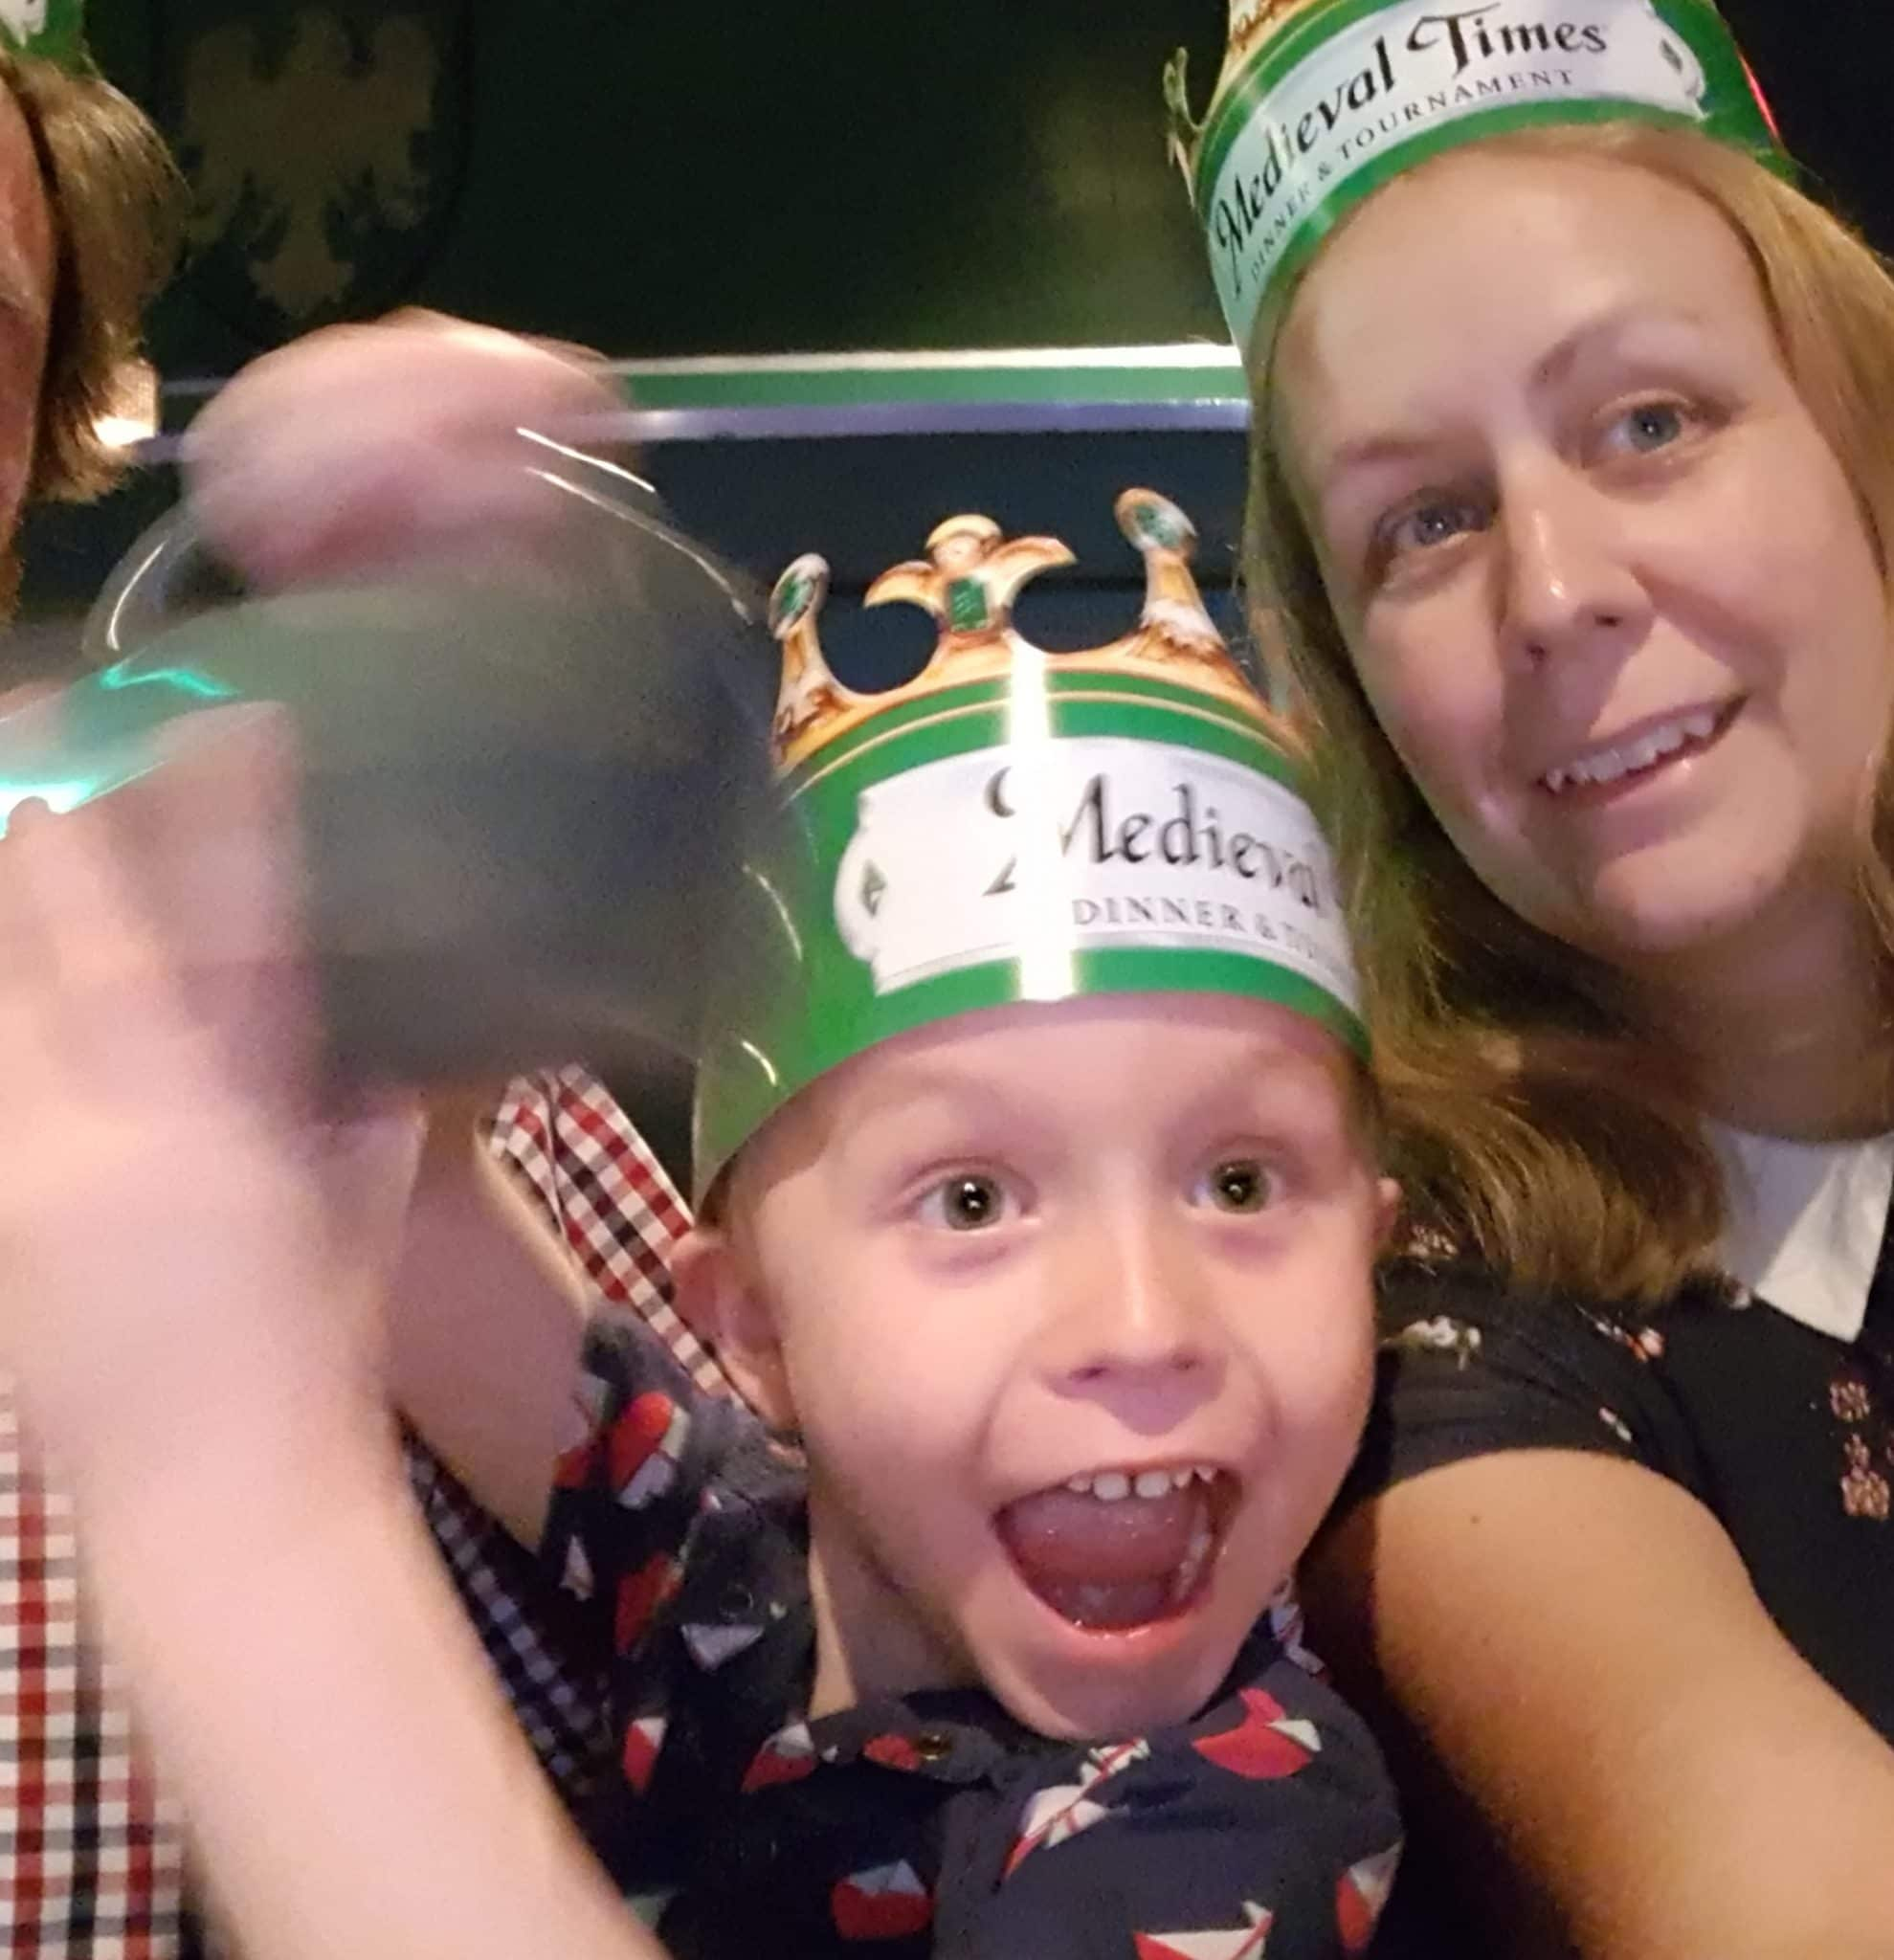 Medieval Times Dinner Show in Orlando, Florida | Review